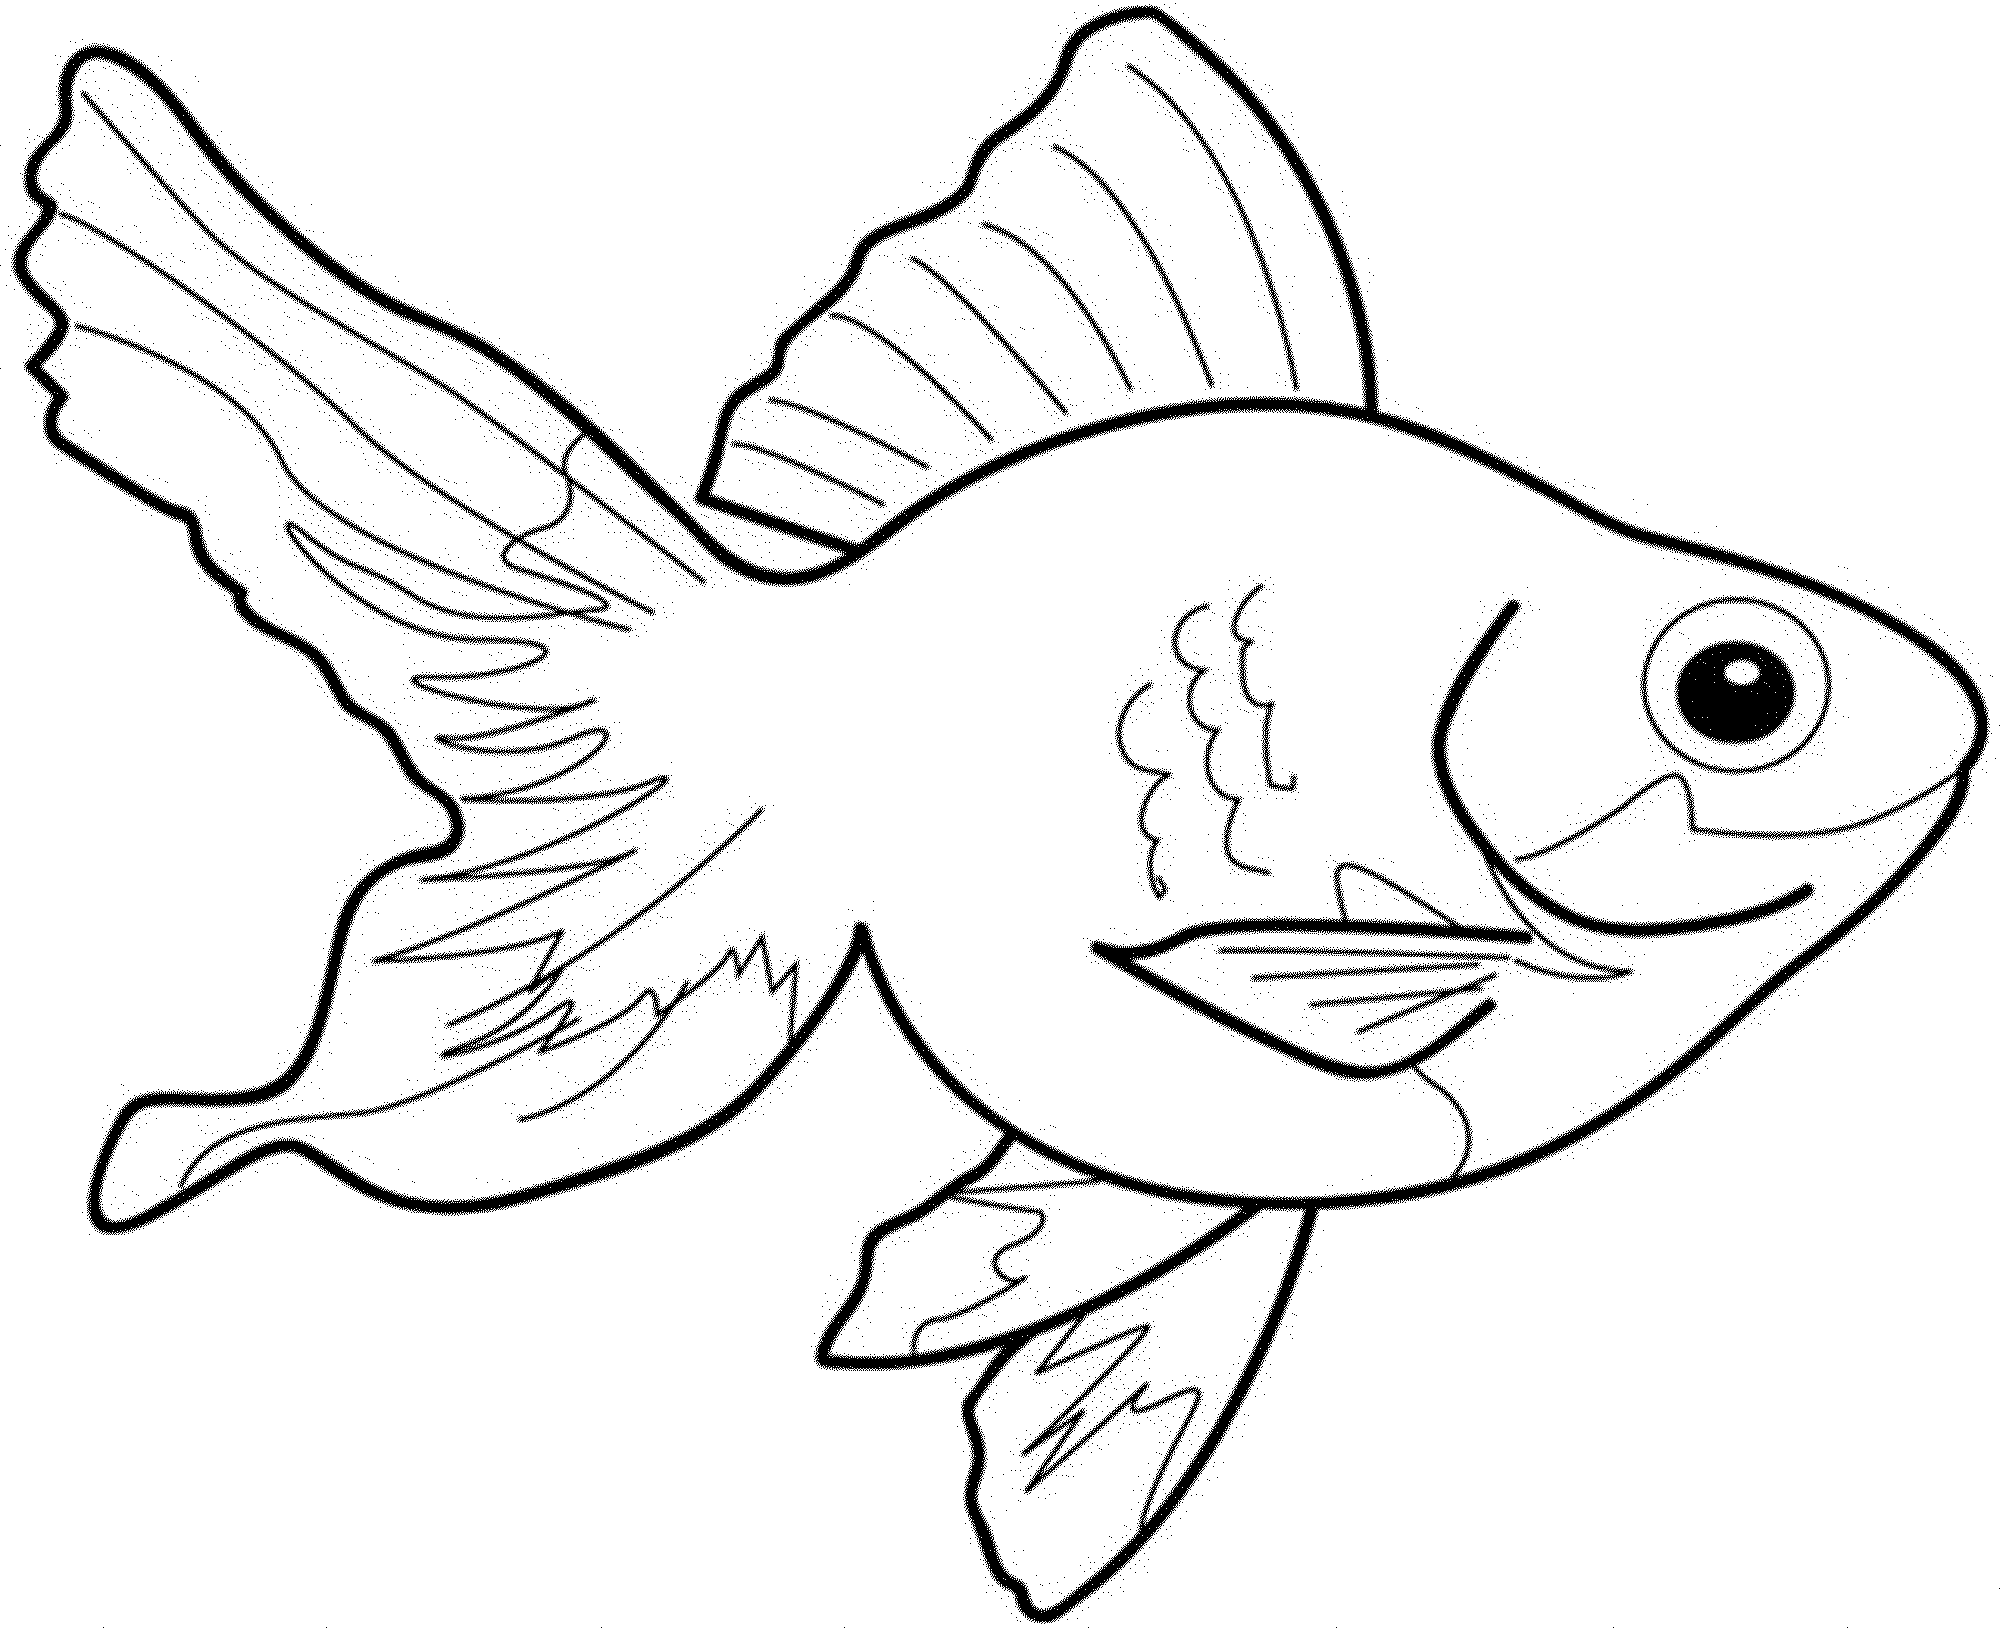 Goldfish Coloring Pages Printable at GetDrawings.com | Free for ...